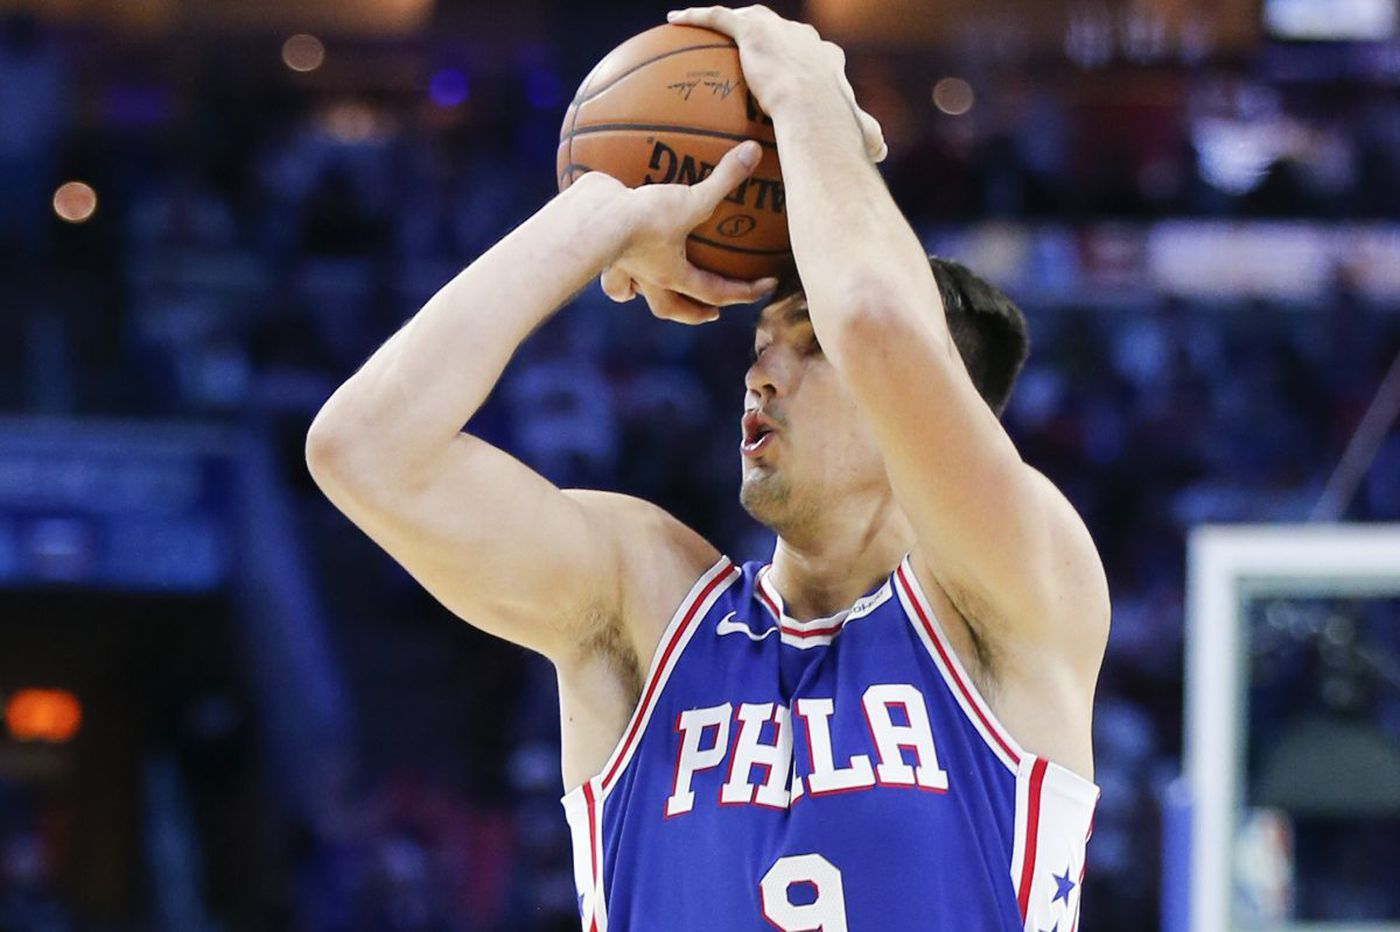 Sixers to start Dario Saric in place of J.J. Redick for second straight game